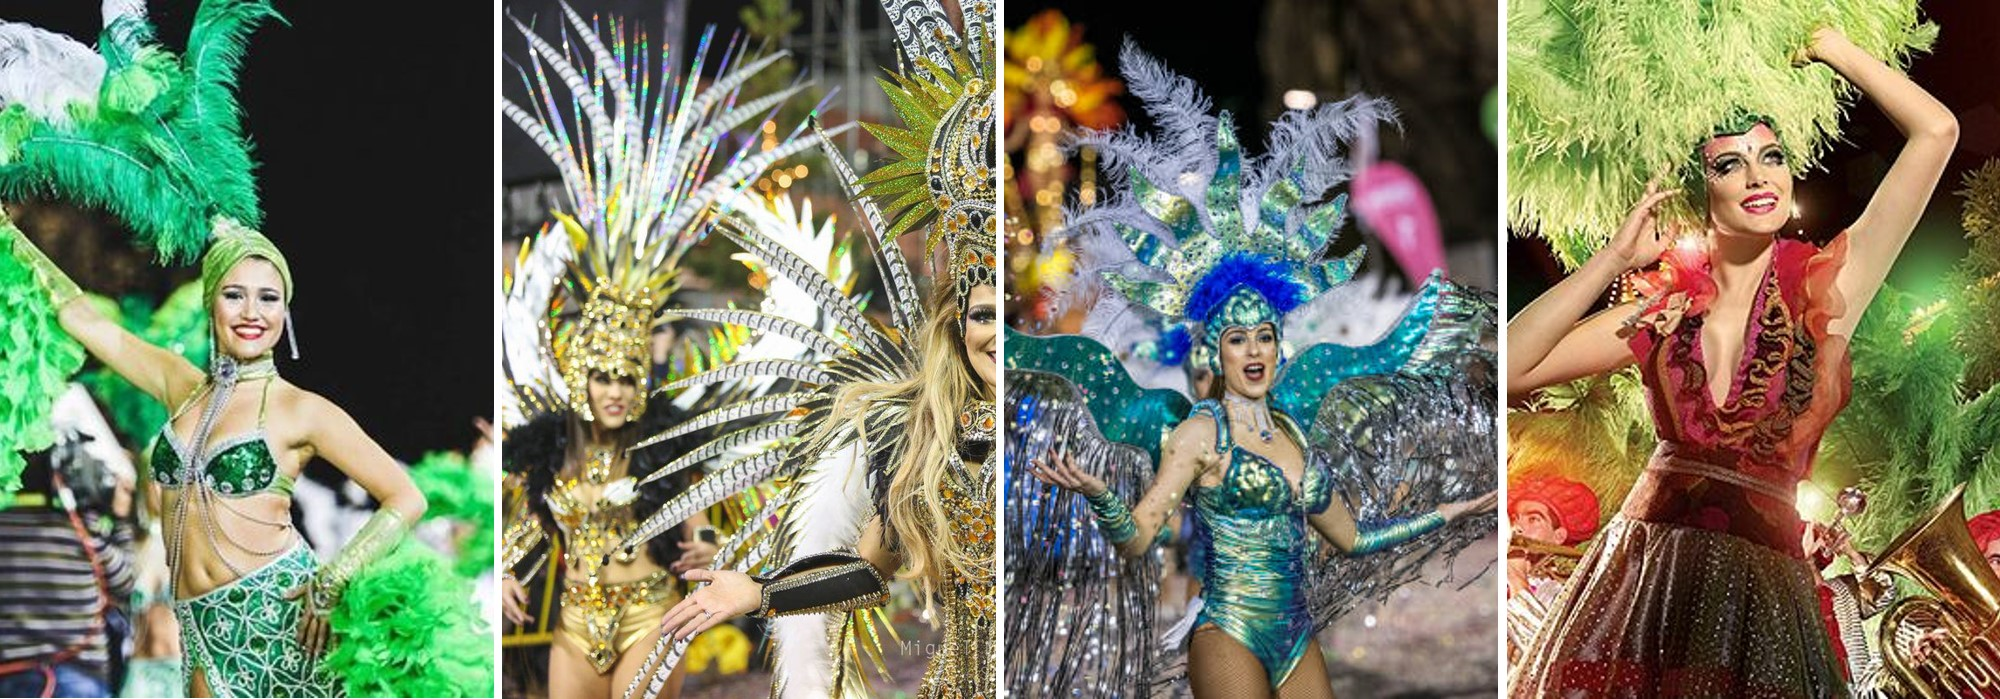 Madeira Funchal Carnival February